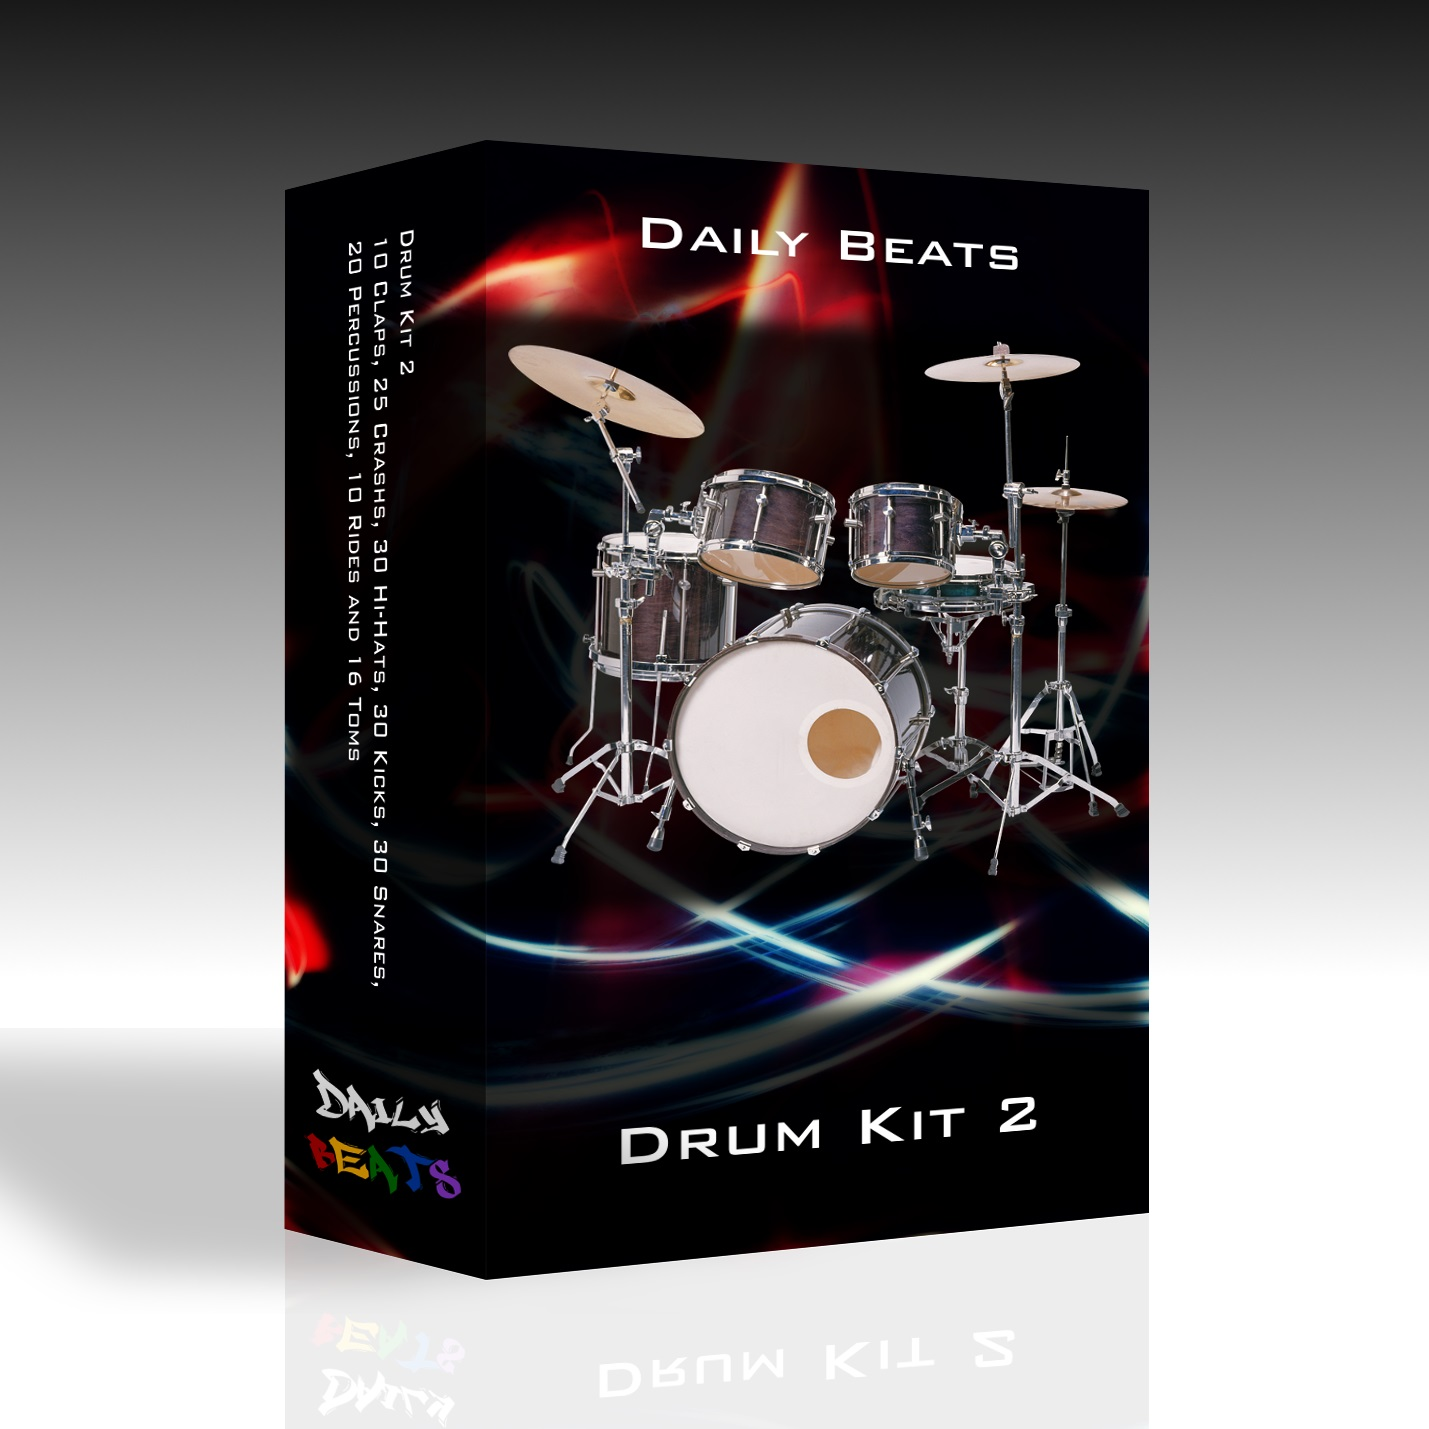 Dum kit 2 Box